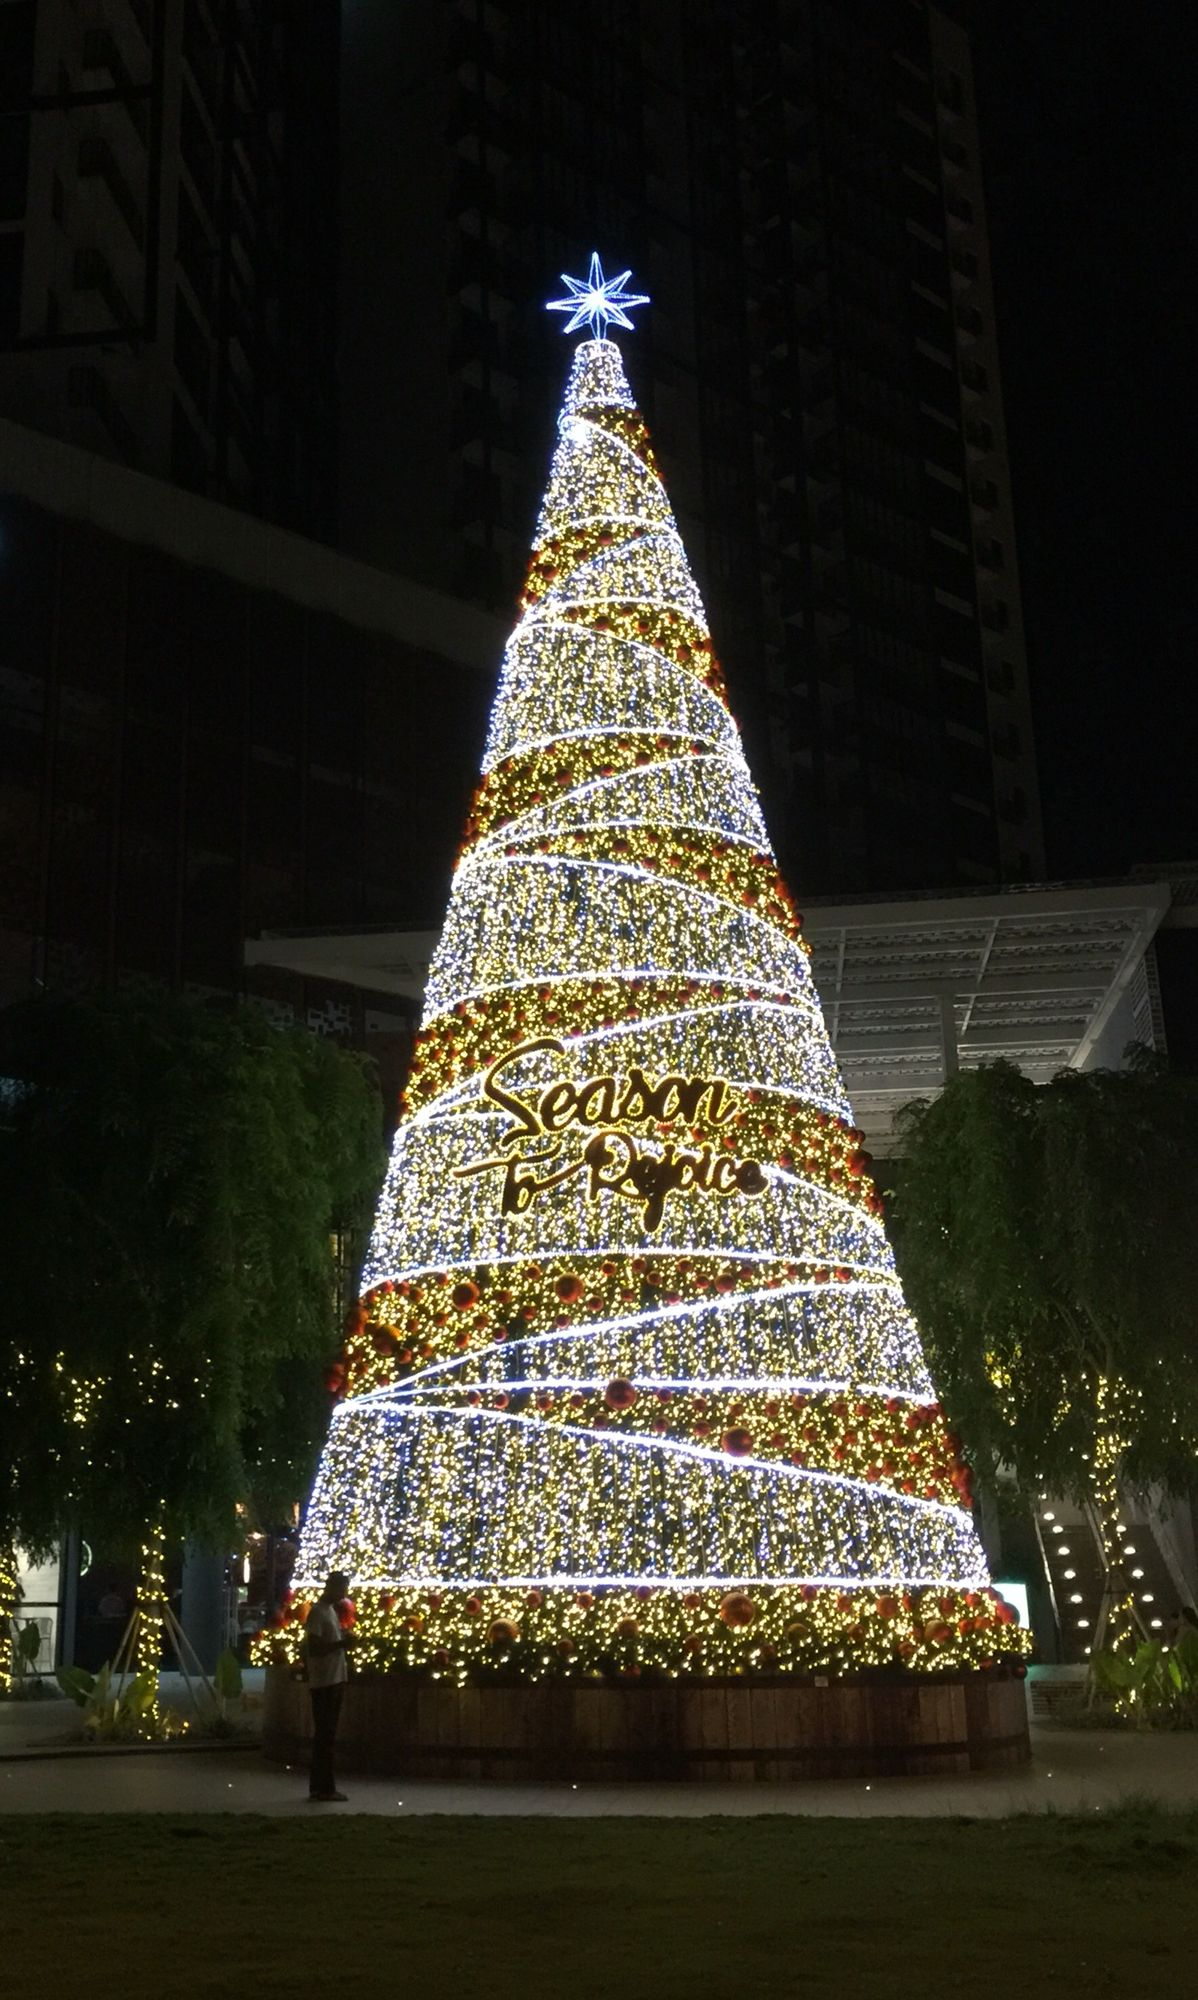 christmas in singapore 2015 christbaumschmuckweihnachtsbaumweihnachtslichterweihnachtssachenweihnachtszeitregierungsgebudeweihnachts - Christbaumschmuck 2015